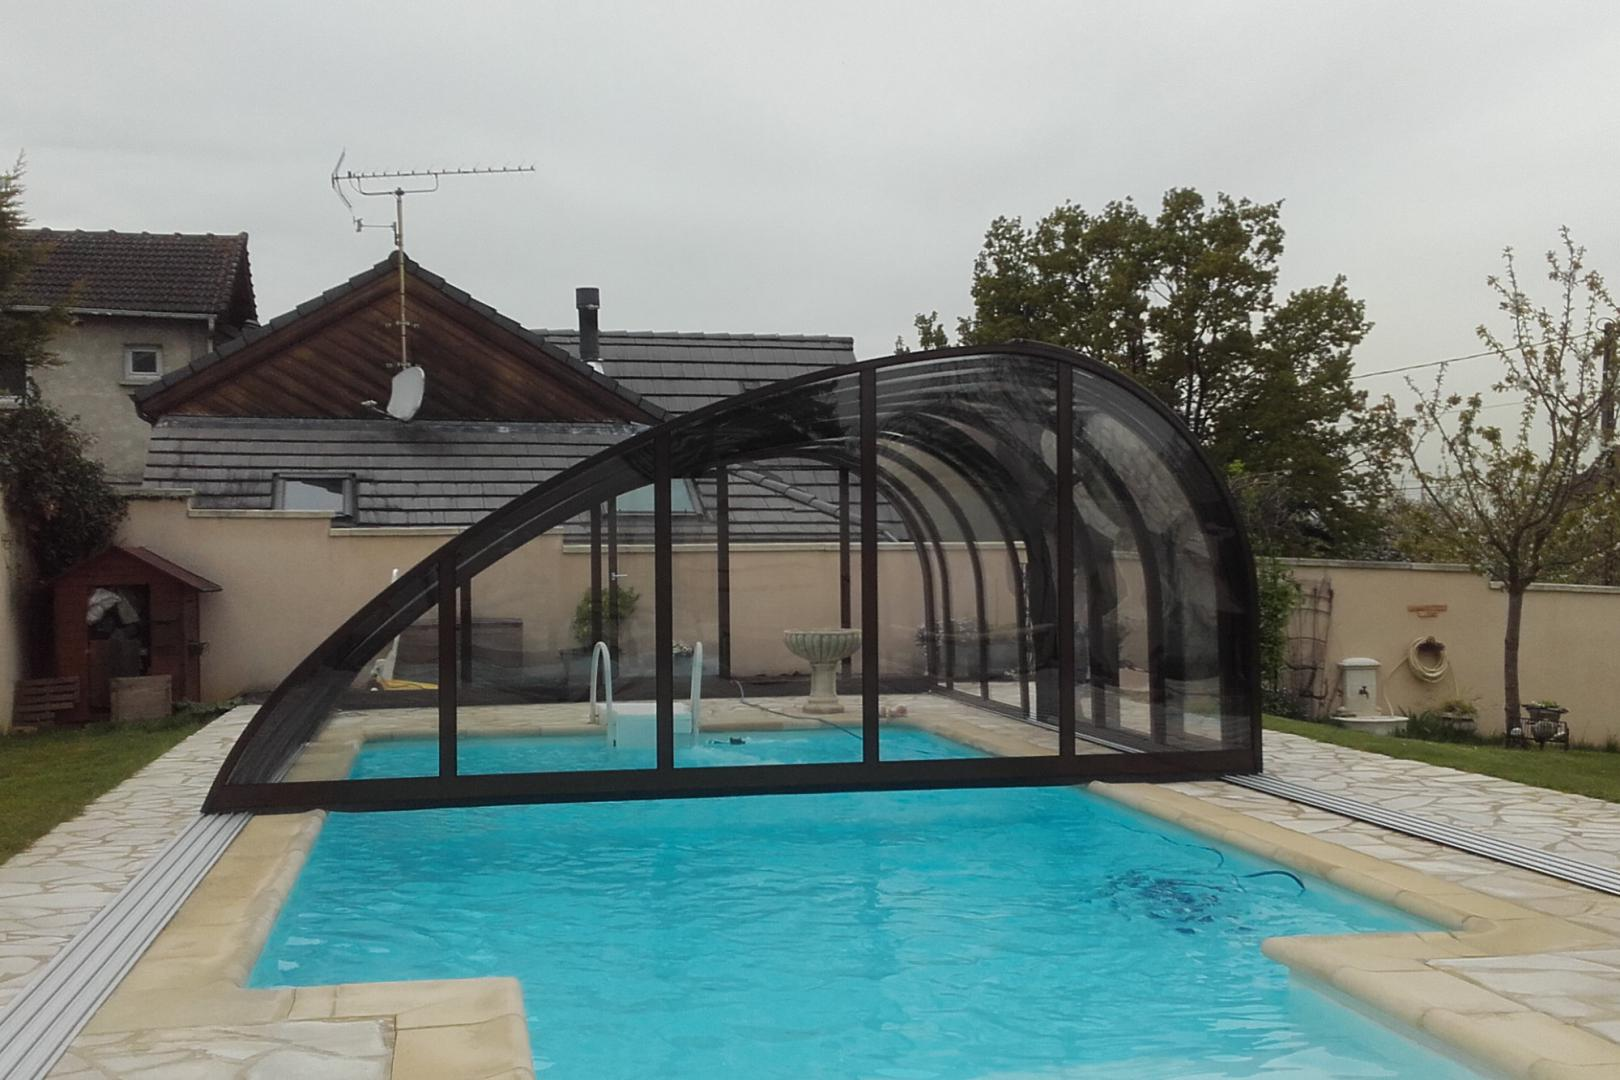 Abris juralu terrasse piscine spa voiture i v randa for Piscine mobile prix